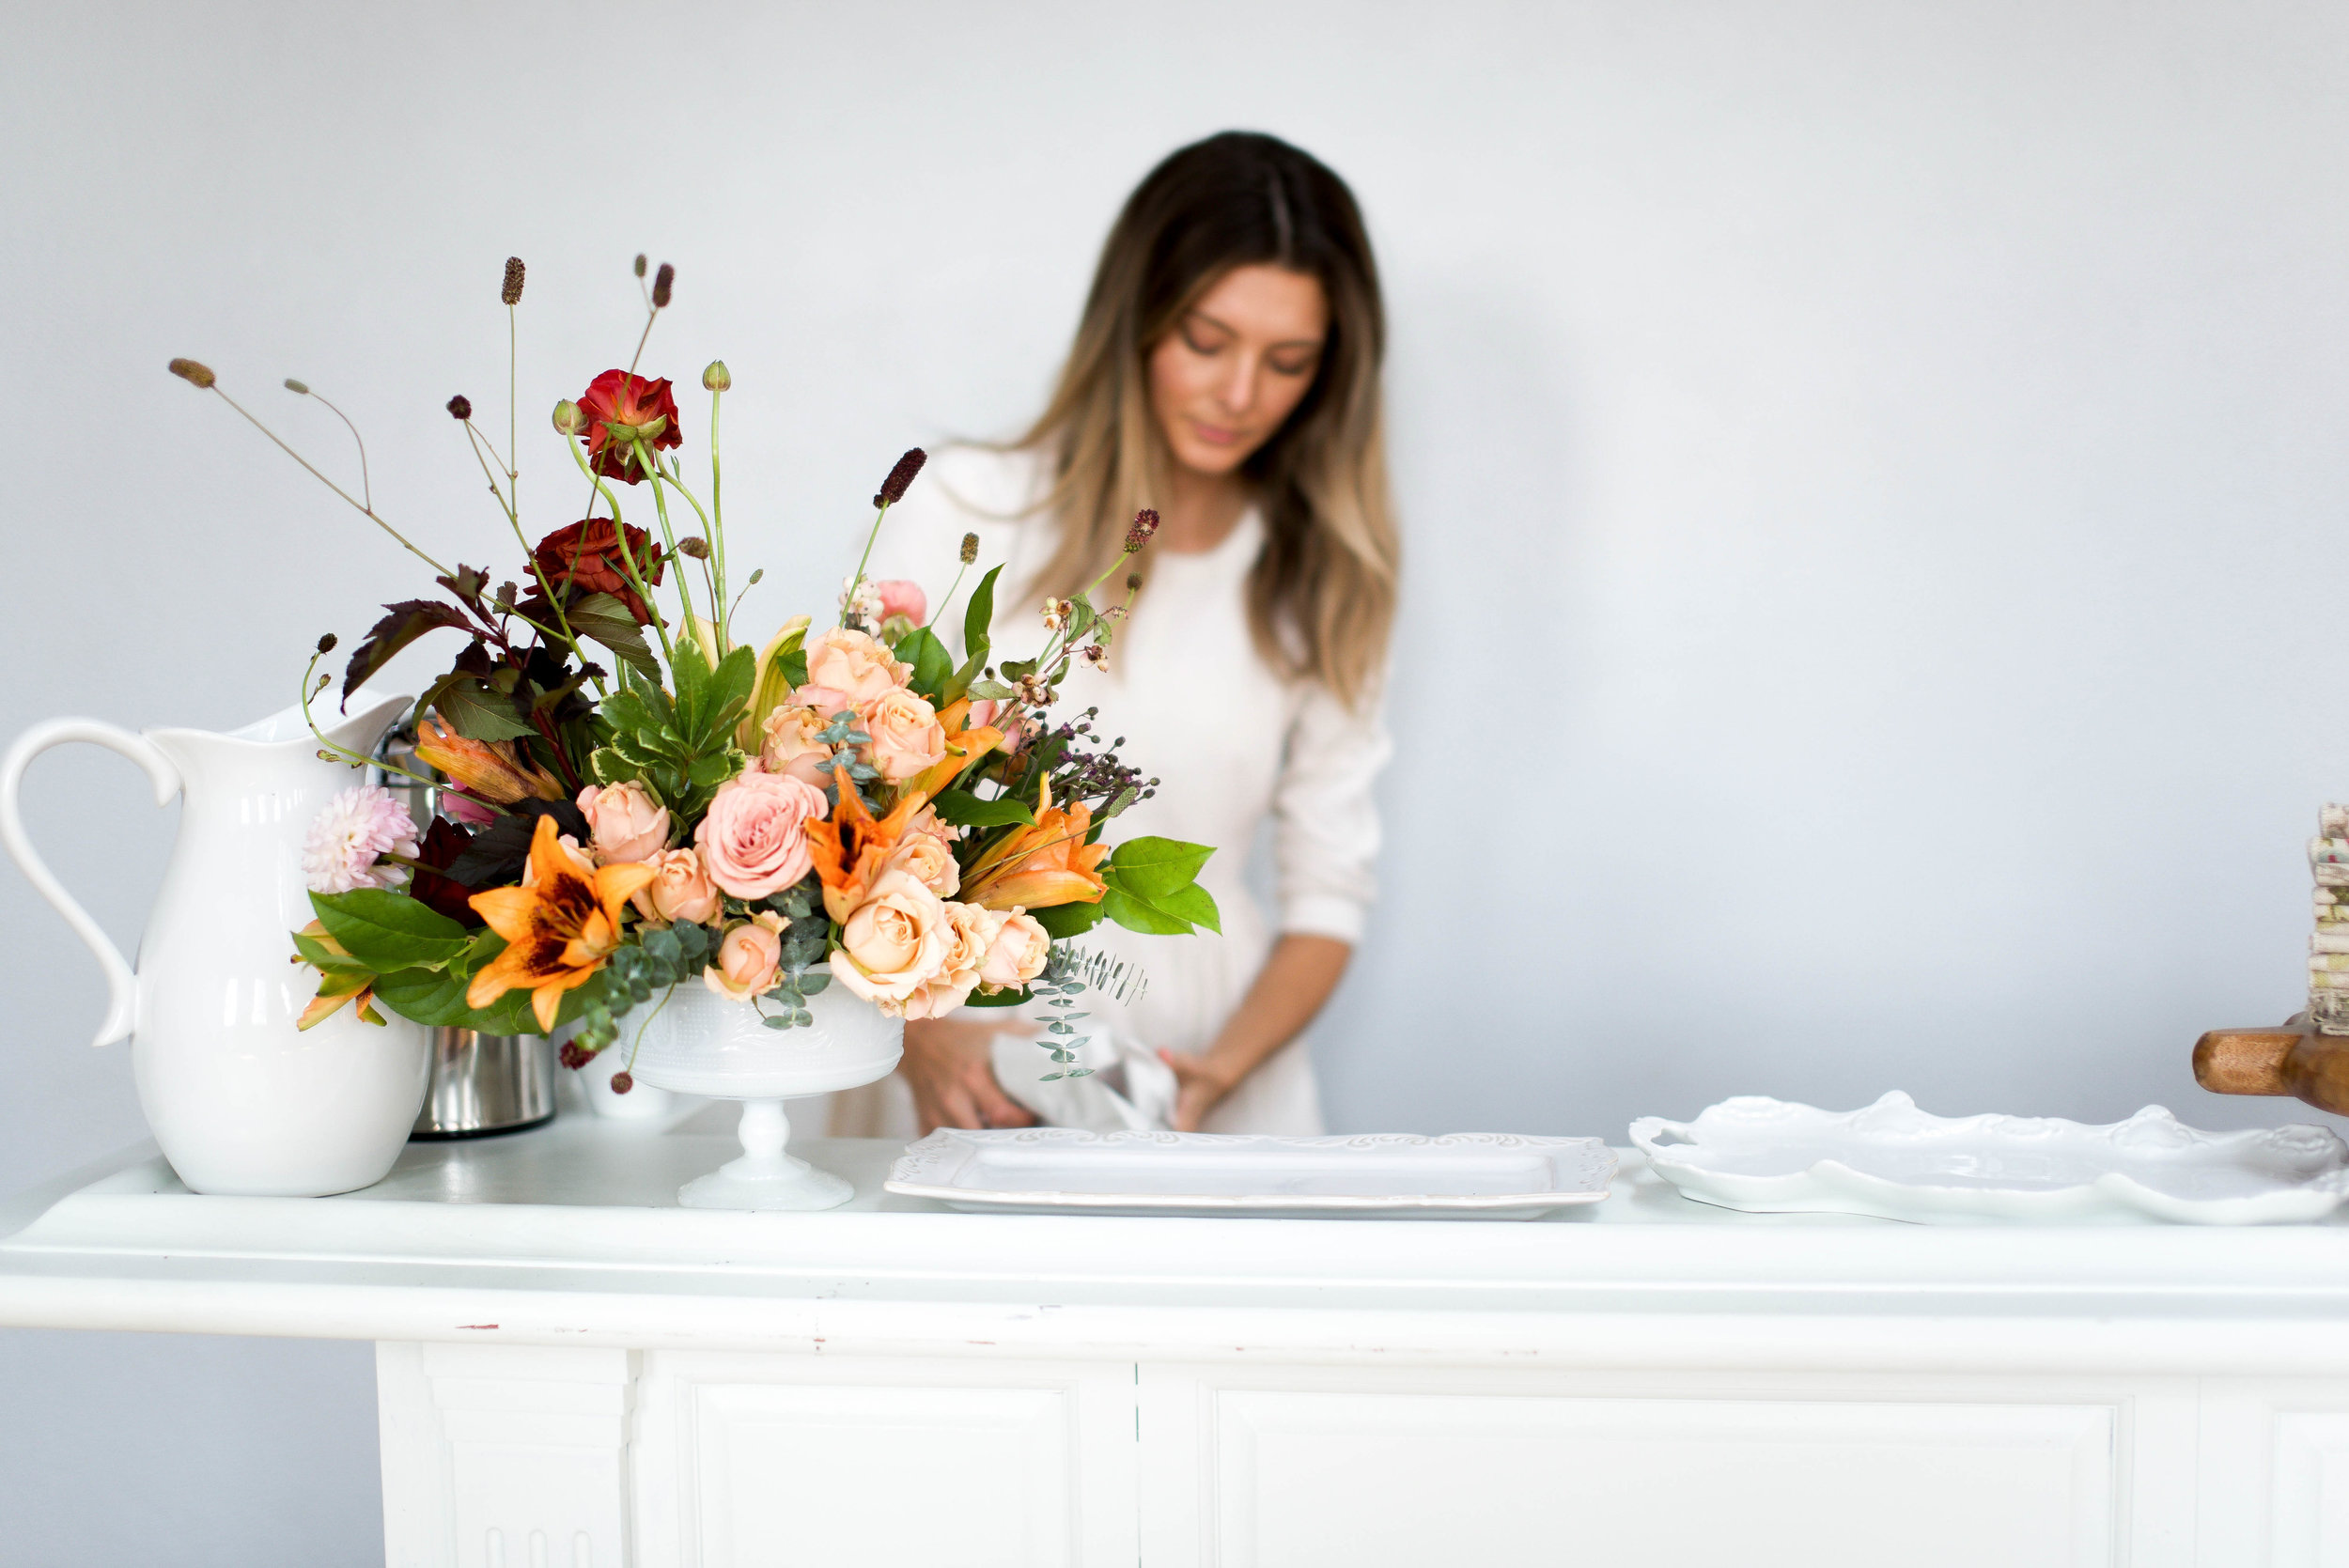 Cortney of  Linen and Rust  with beautiful styling for  Kindred Photography Workshop , Photo by  Kacey Gilpin